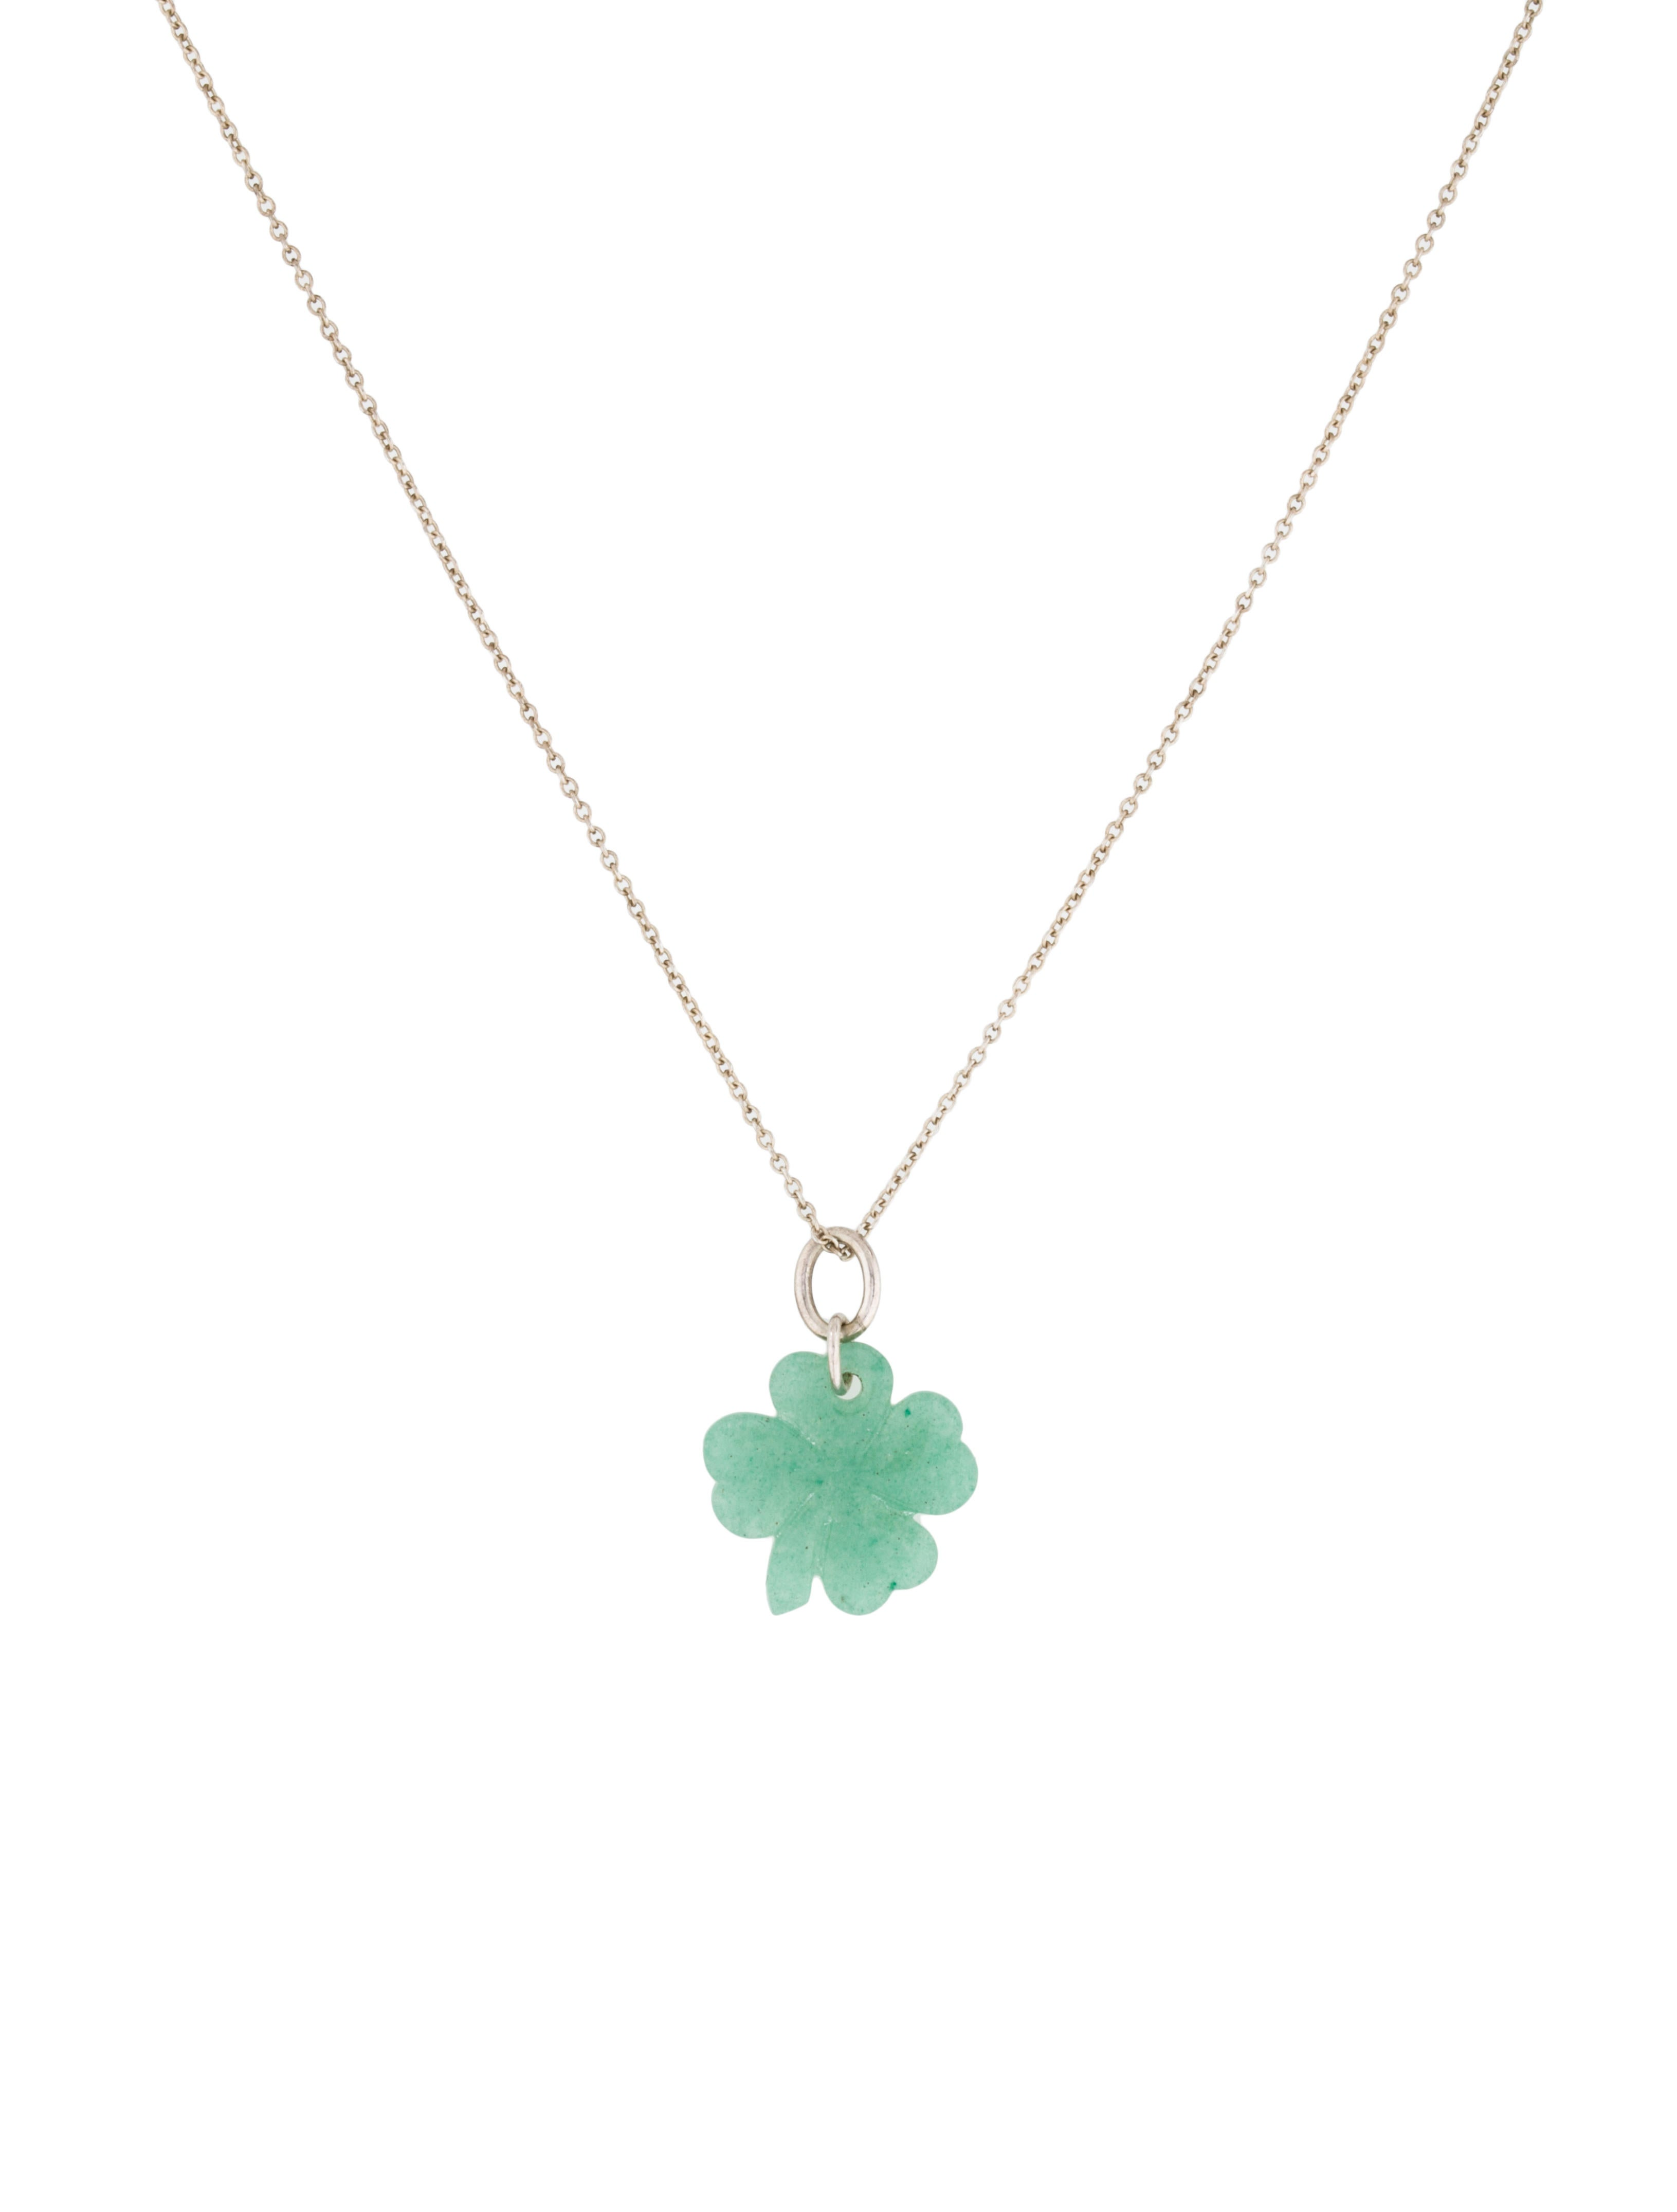 Tiffany co aventurine clover pendant necklace necklaces aventurine clover pendant necklace aloadofball Image collections